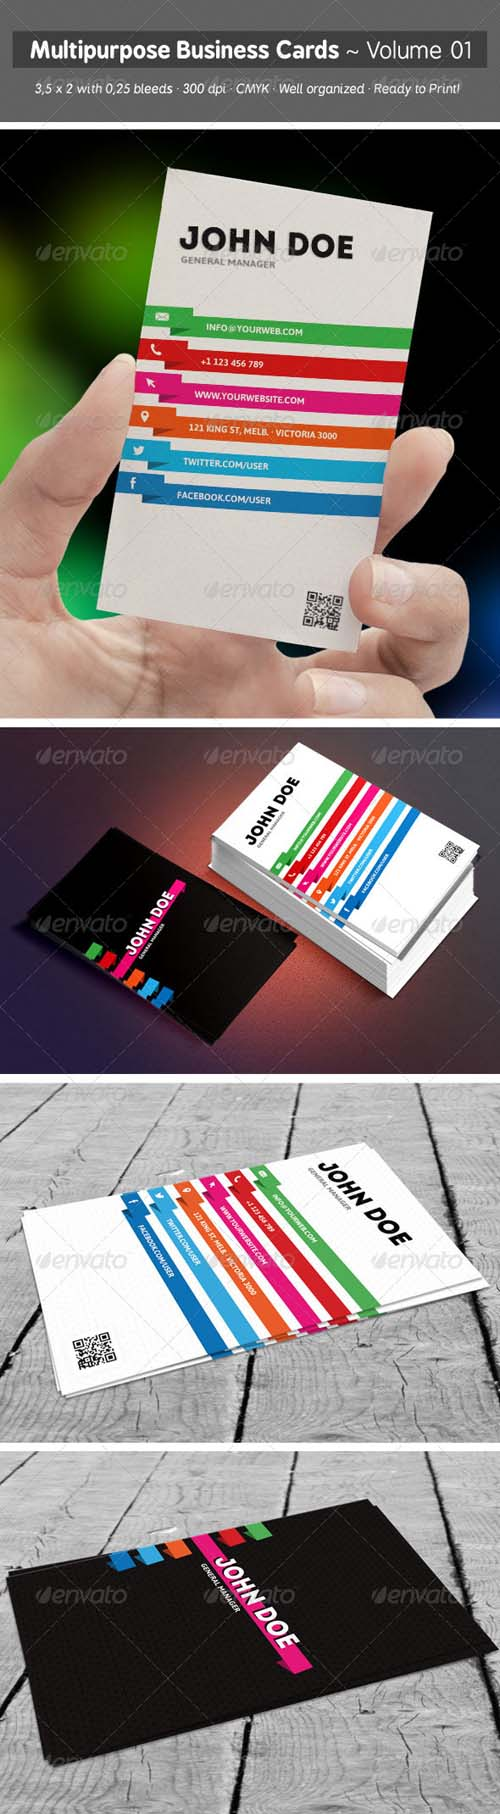 Multipurpose Business Cards - Volume 01 6808803